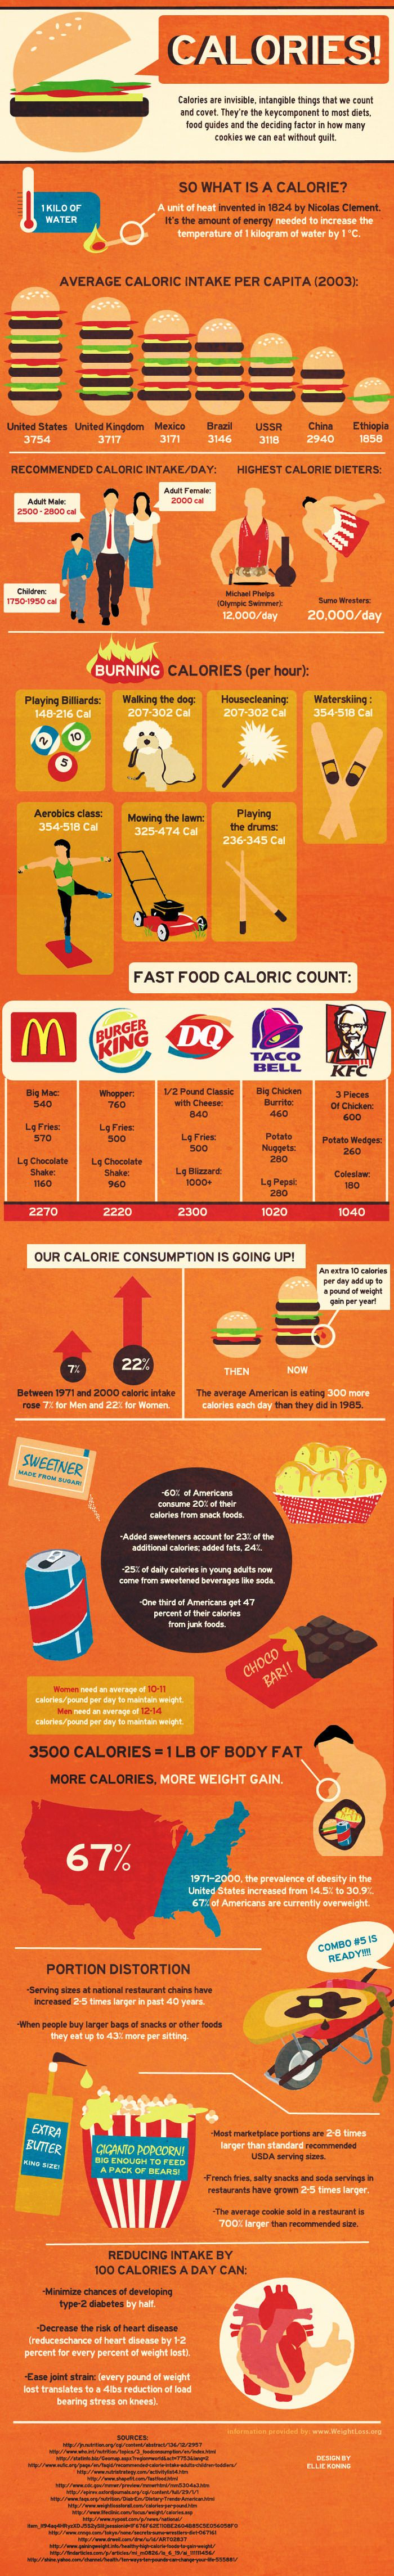 how to calculate calories needed to lose weight